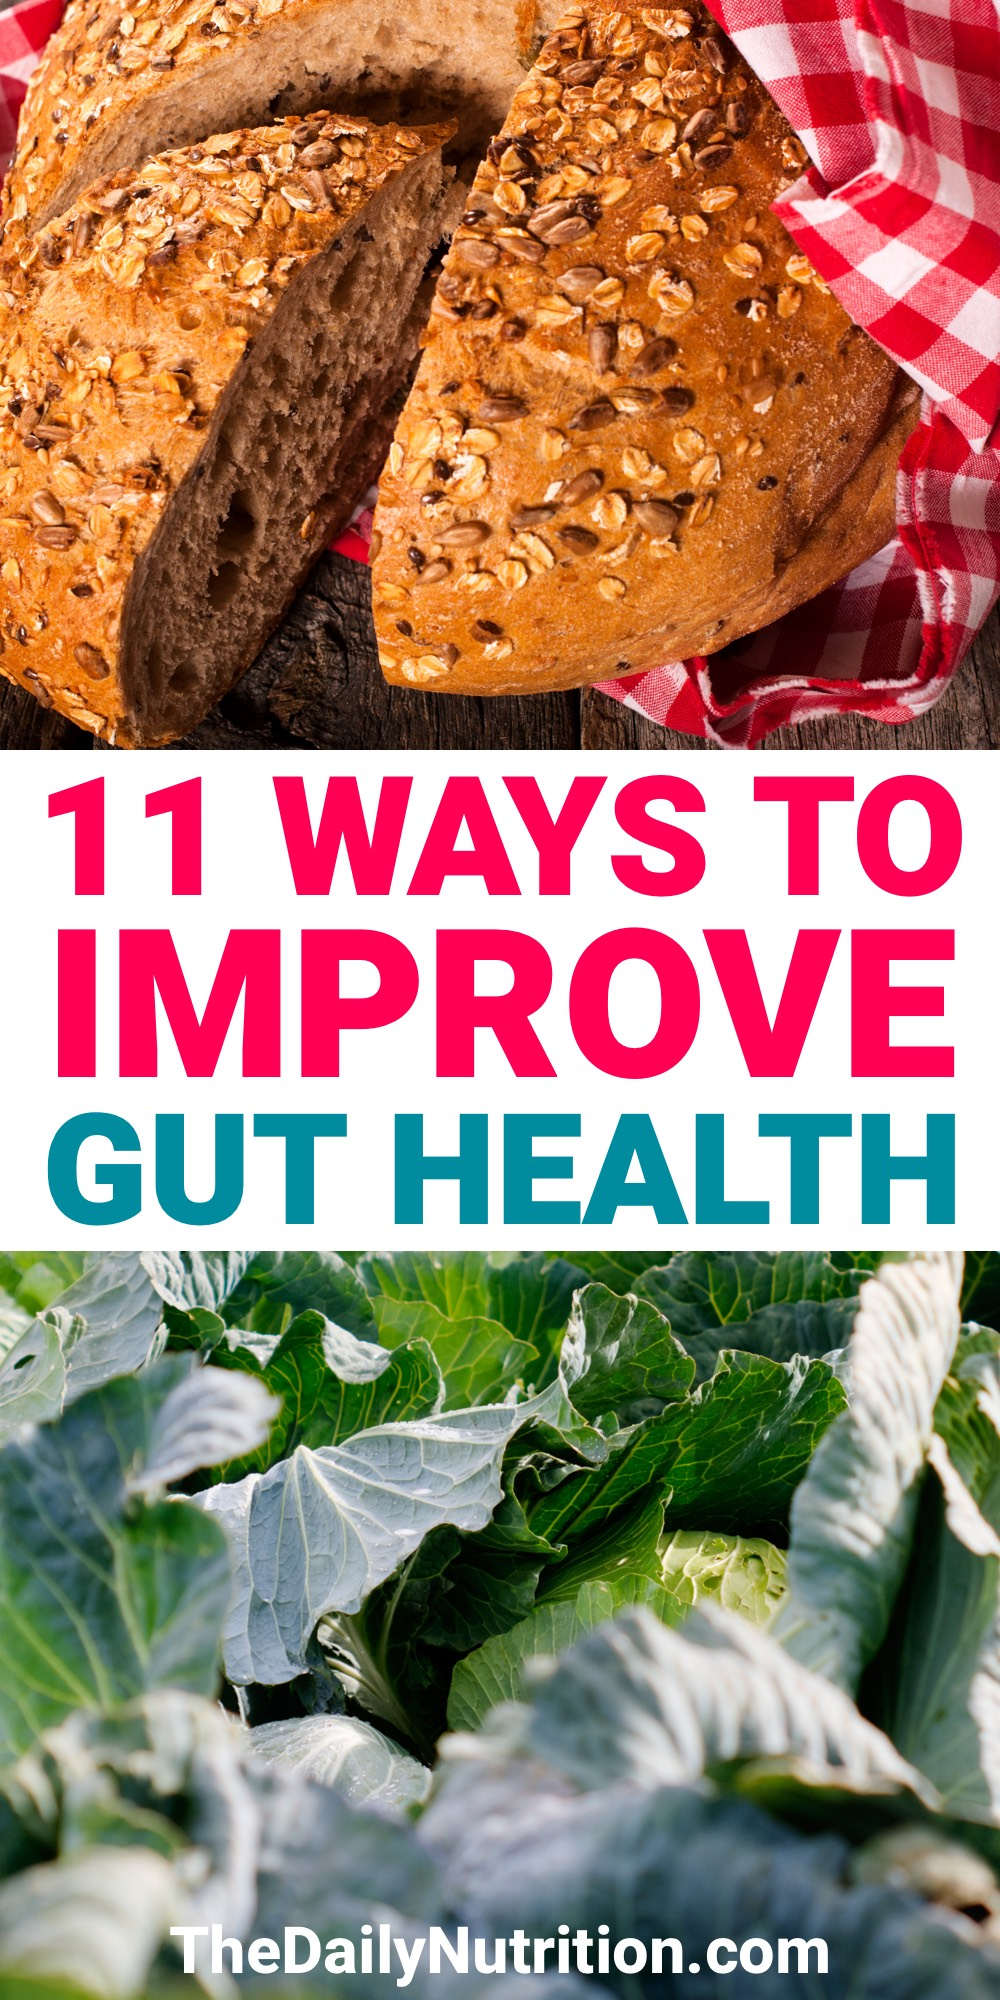 When it comes to your gut health, it can sometimes be very poor. Here are ways to improve your gut health.